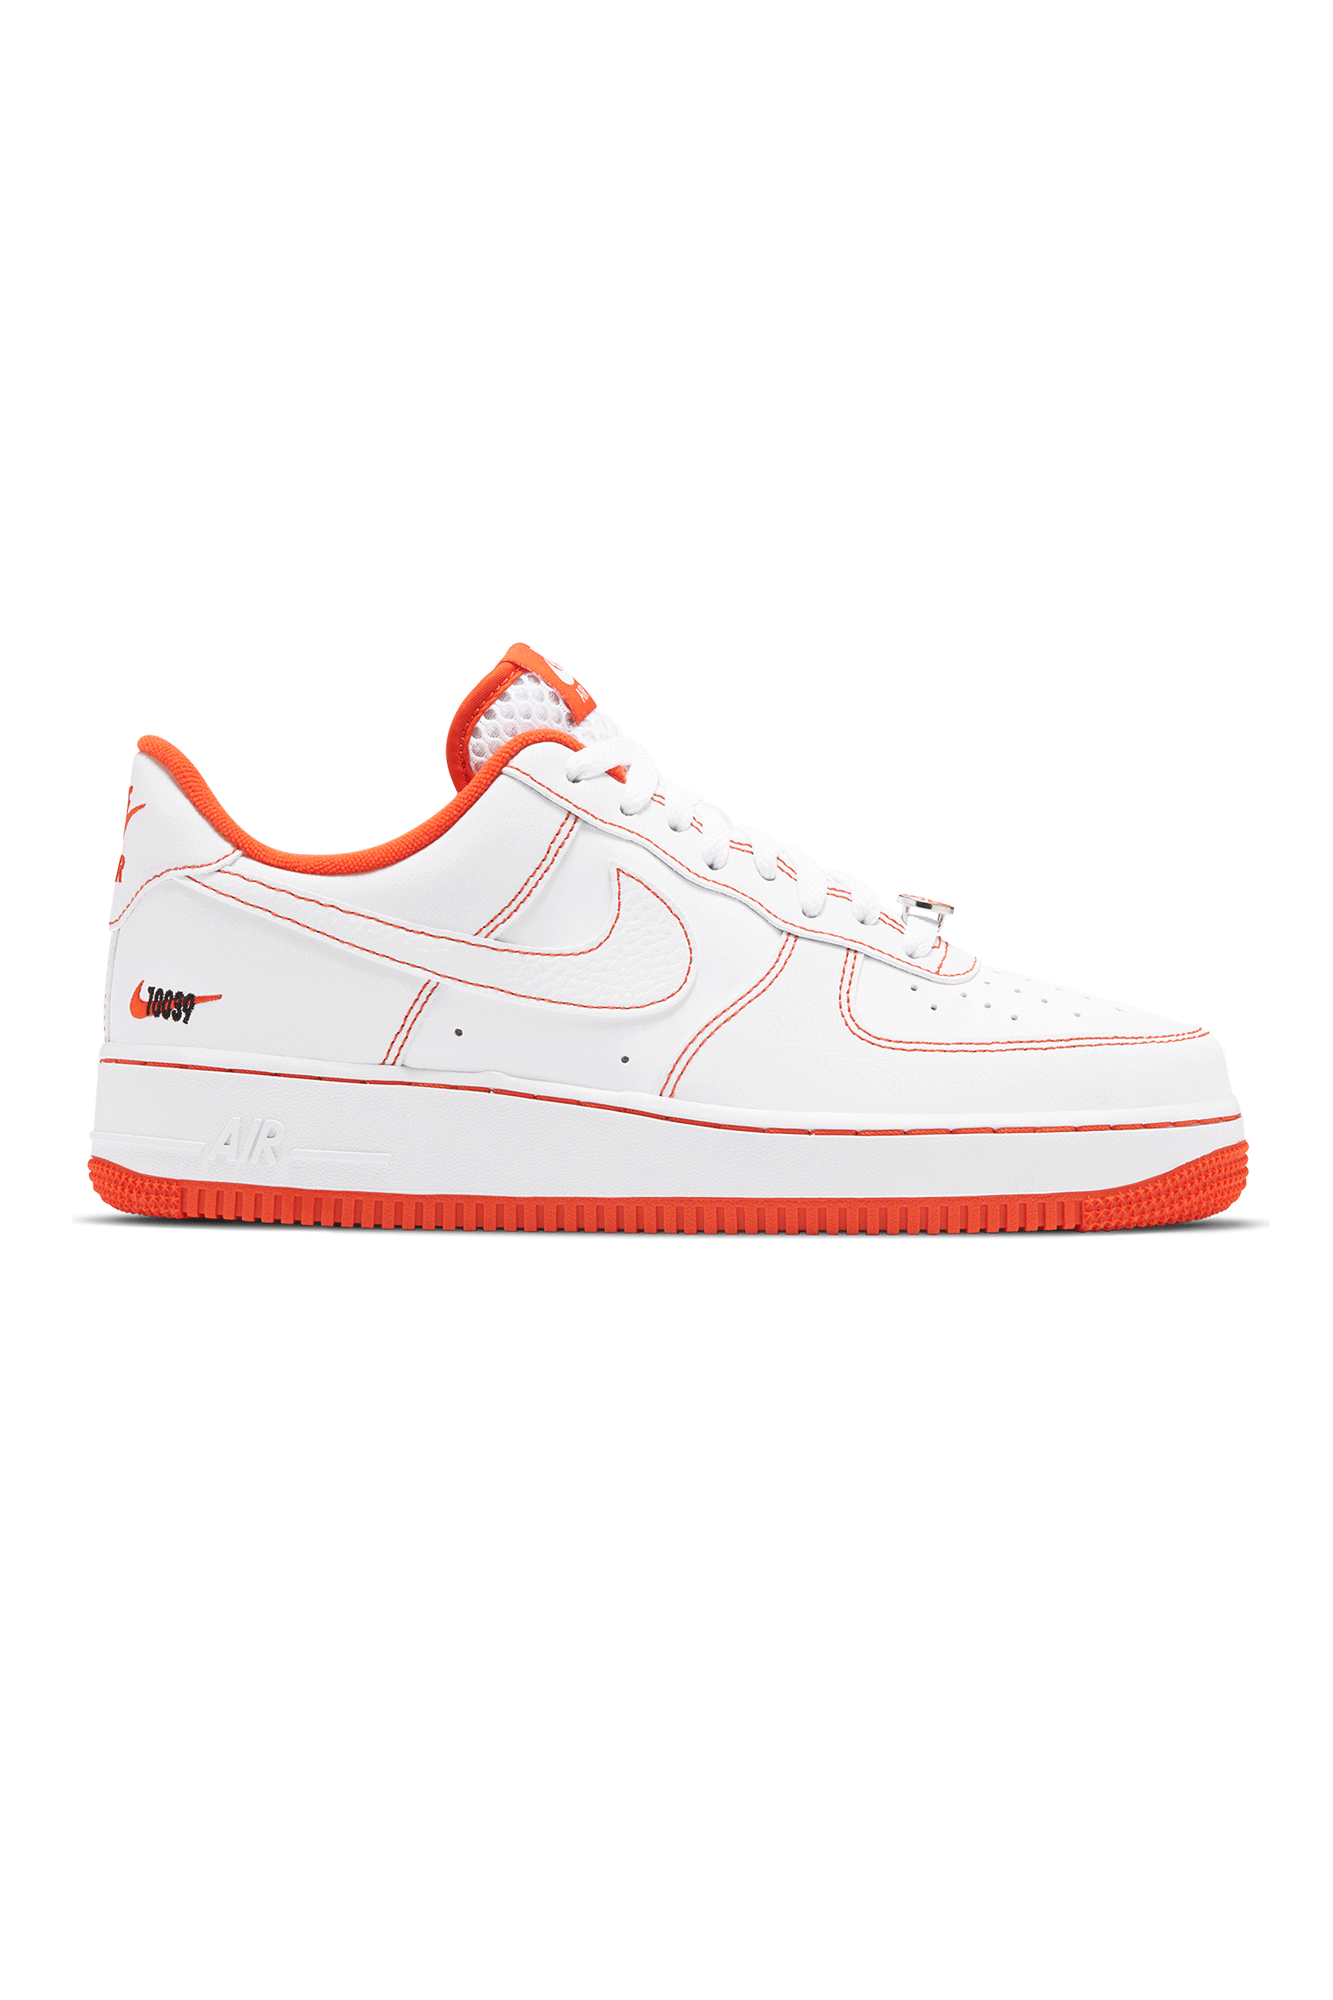 "Nike Sneakers Air Force 1 '07 LV8 EMB ""Rucker Park"" White CT2585-#000#100#7 - One Block Down"